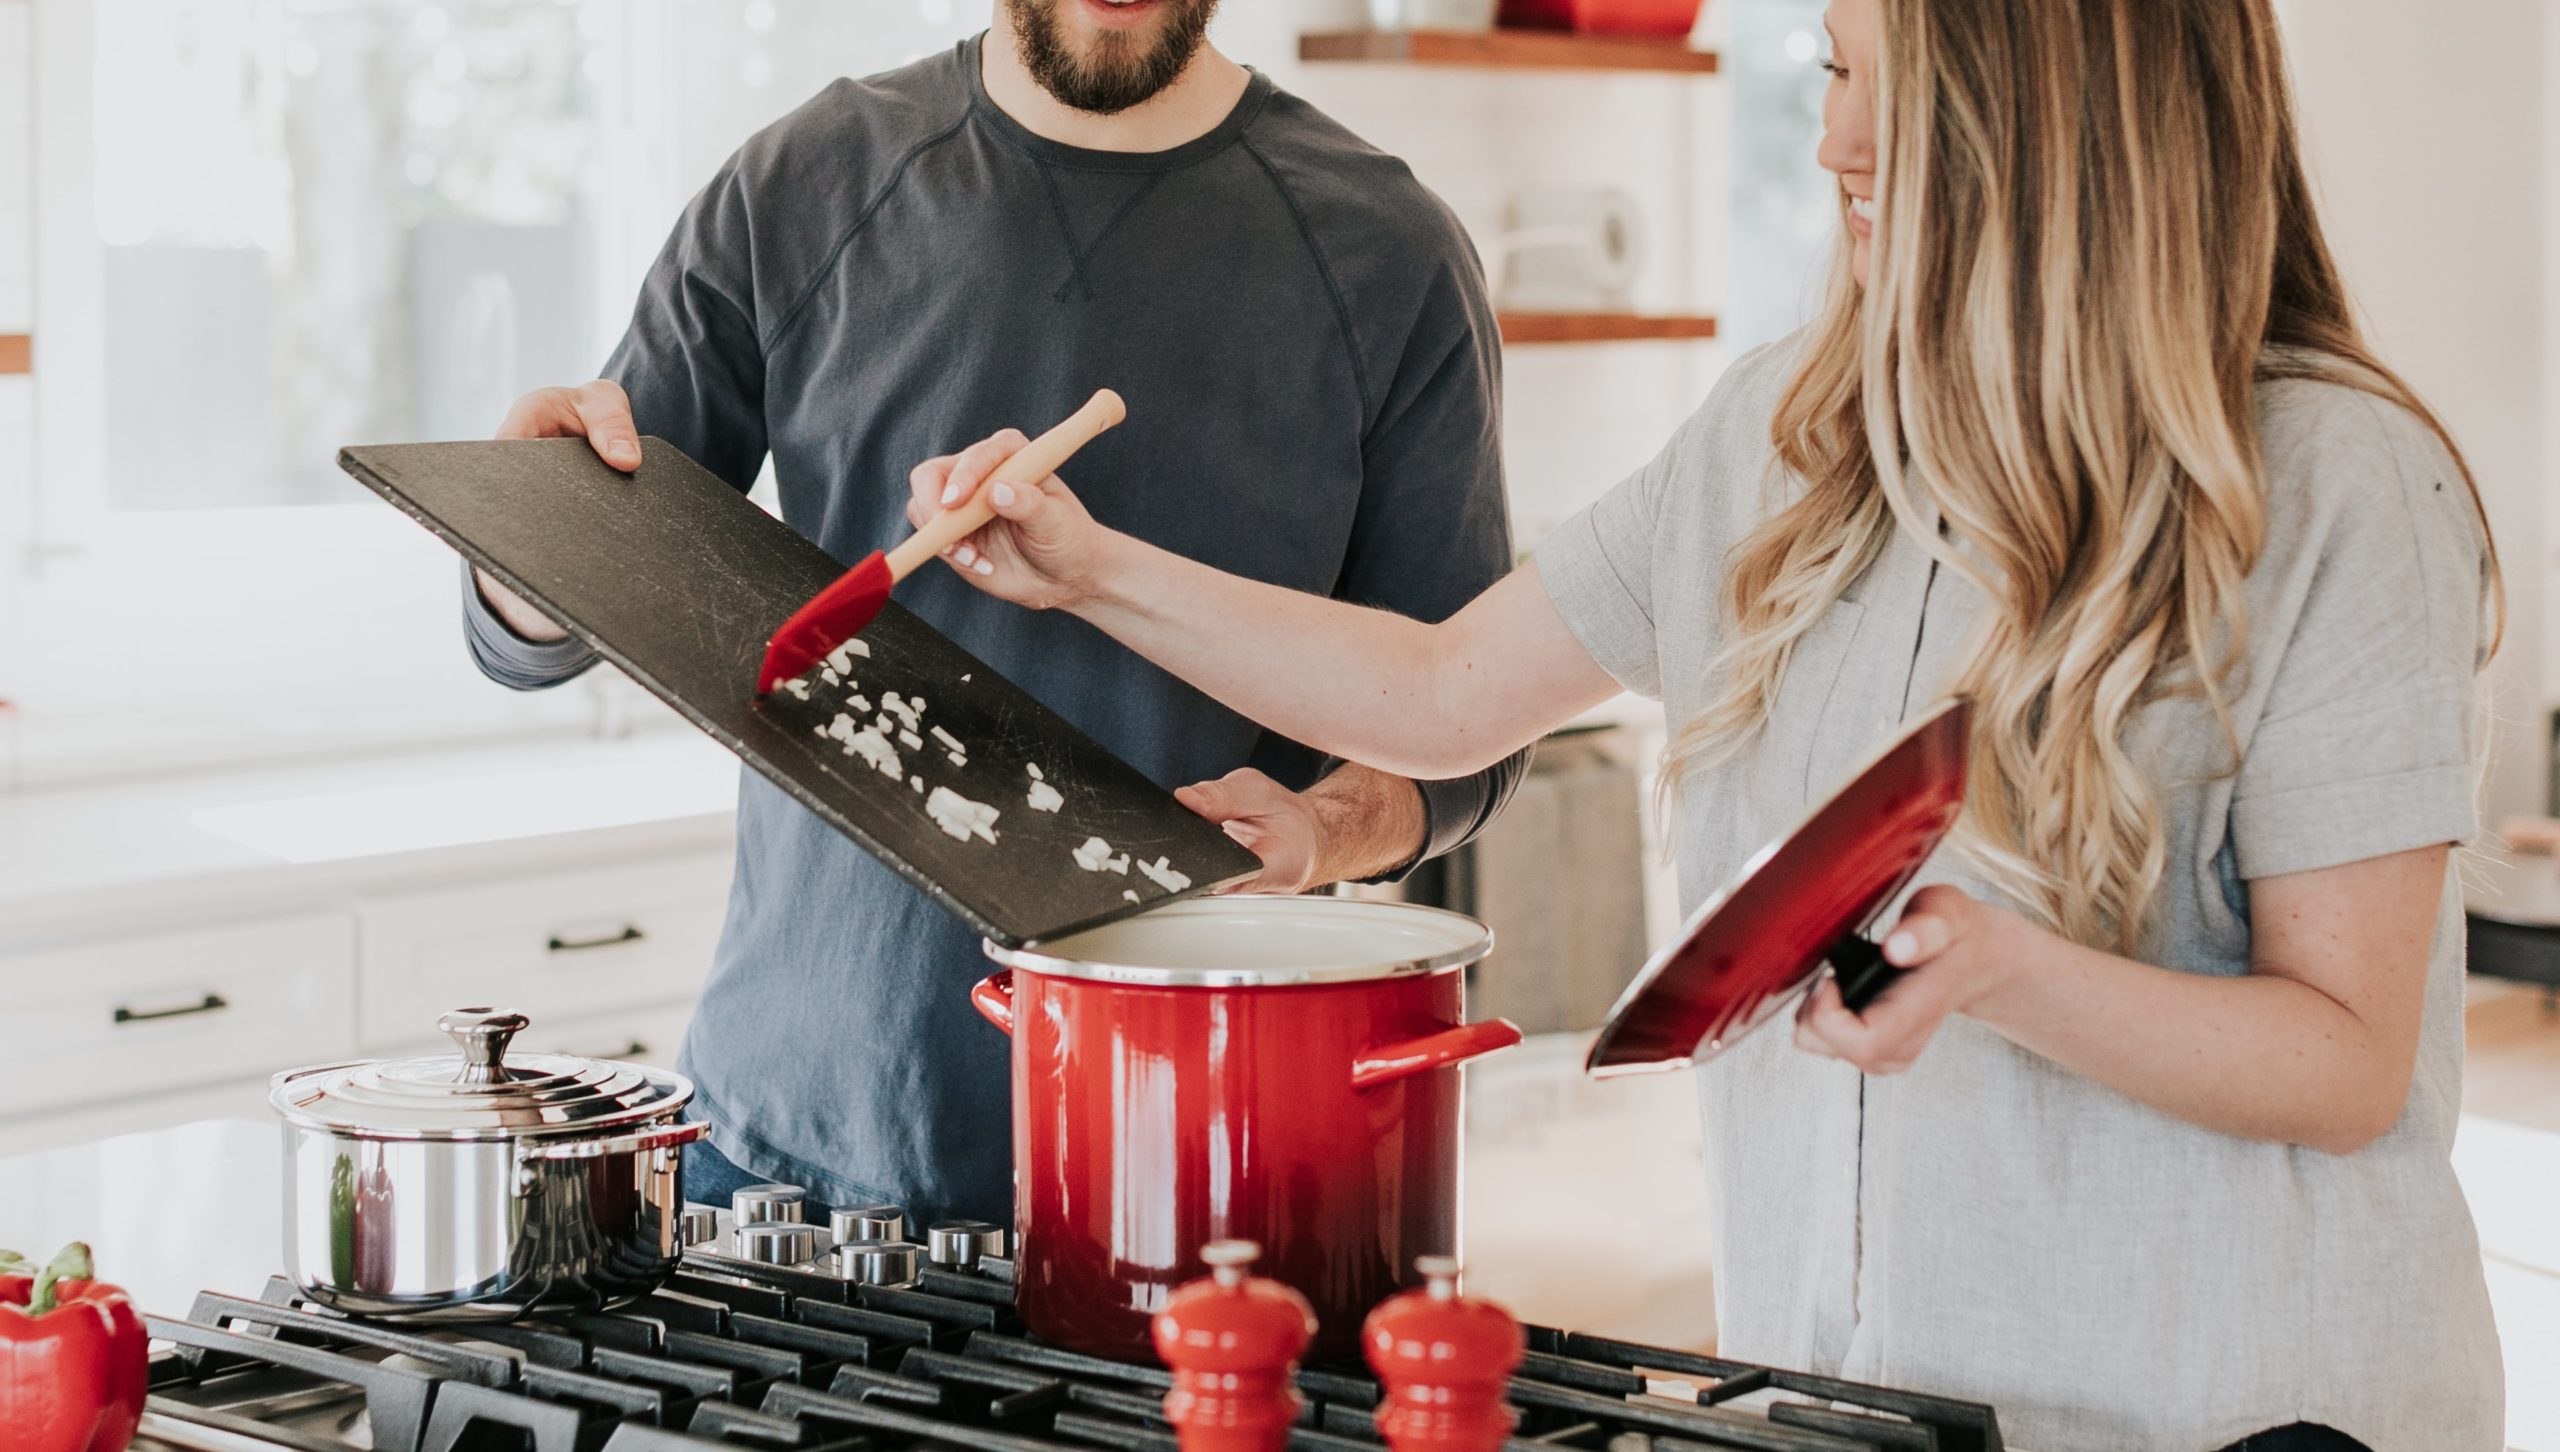 Two people cooking together - the man is holding a cutting board while a woman scrapes onions off of it into a dutch oven